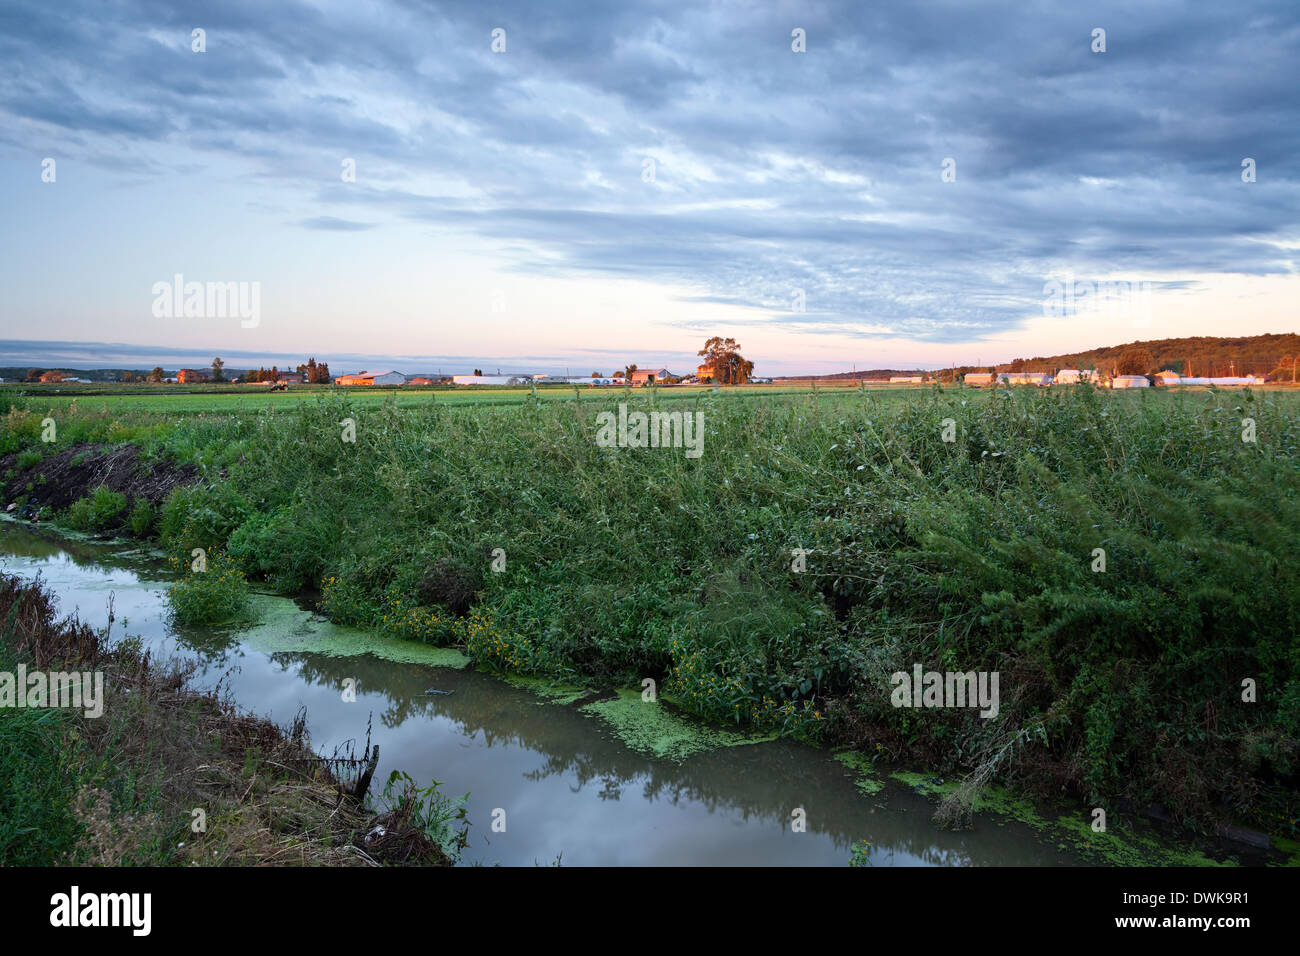 A dirty irrigation canal runs along the side of a road at sunrise in the Holland Marsh, Bradford West Gwillimbury Ontario Canada - Stock Image